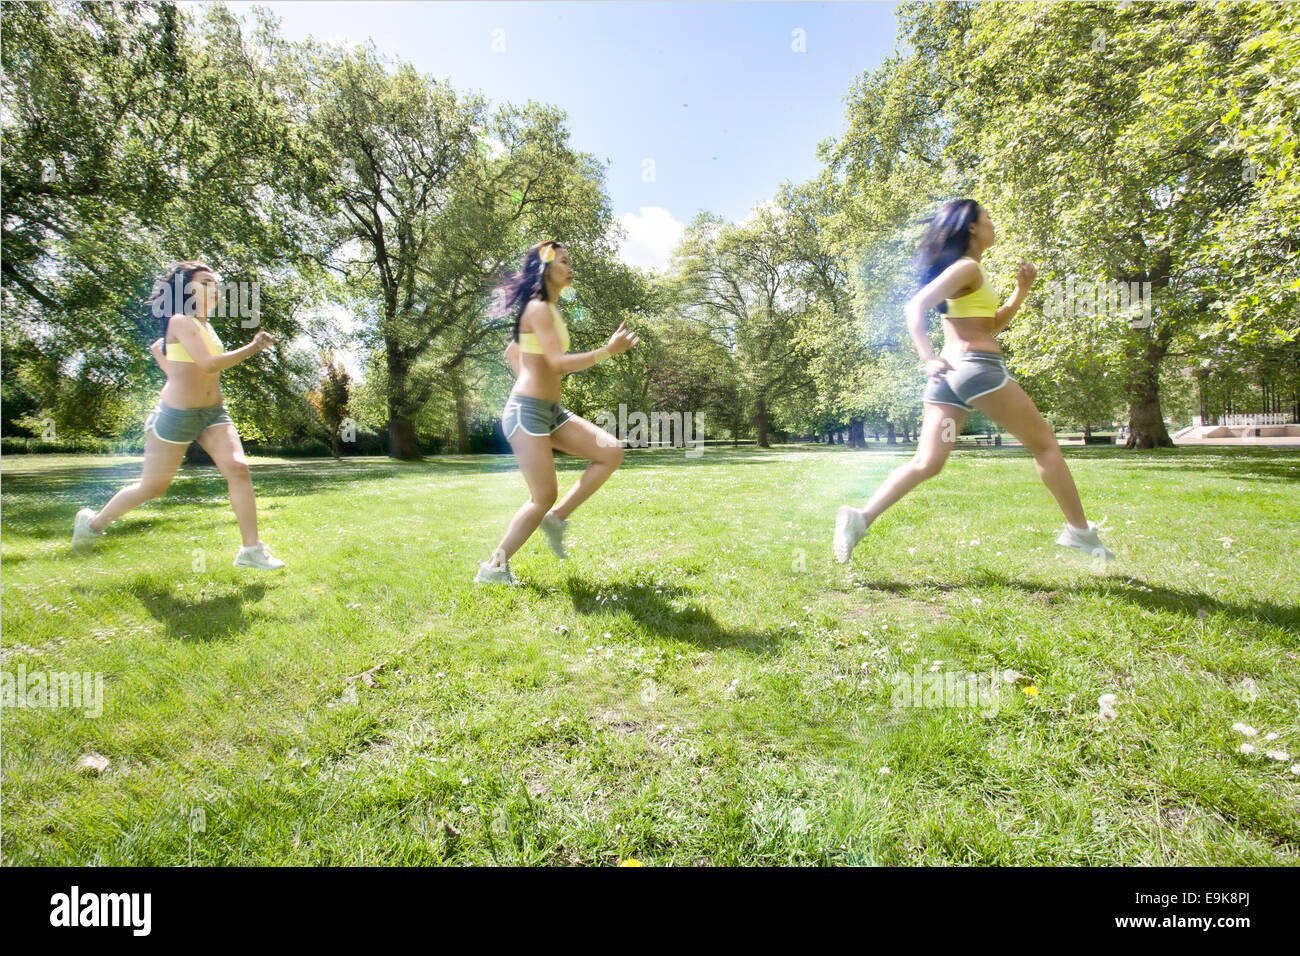 Multiple image of young fit woman jogging at park - Stock Image